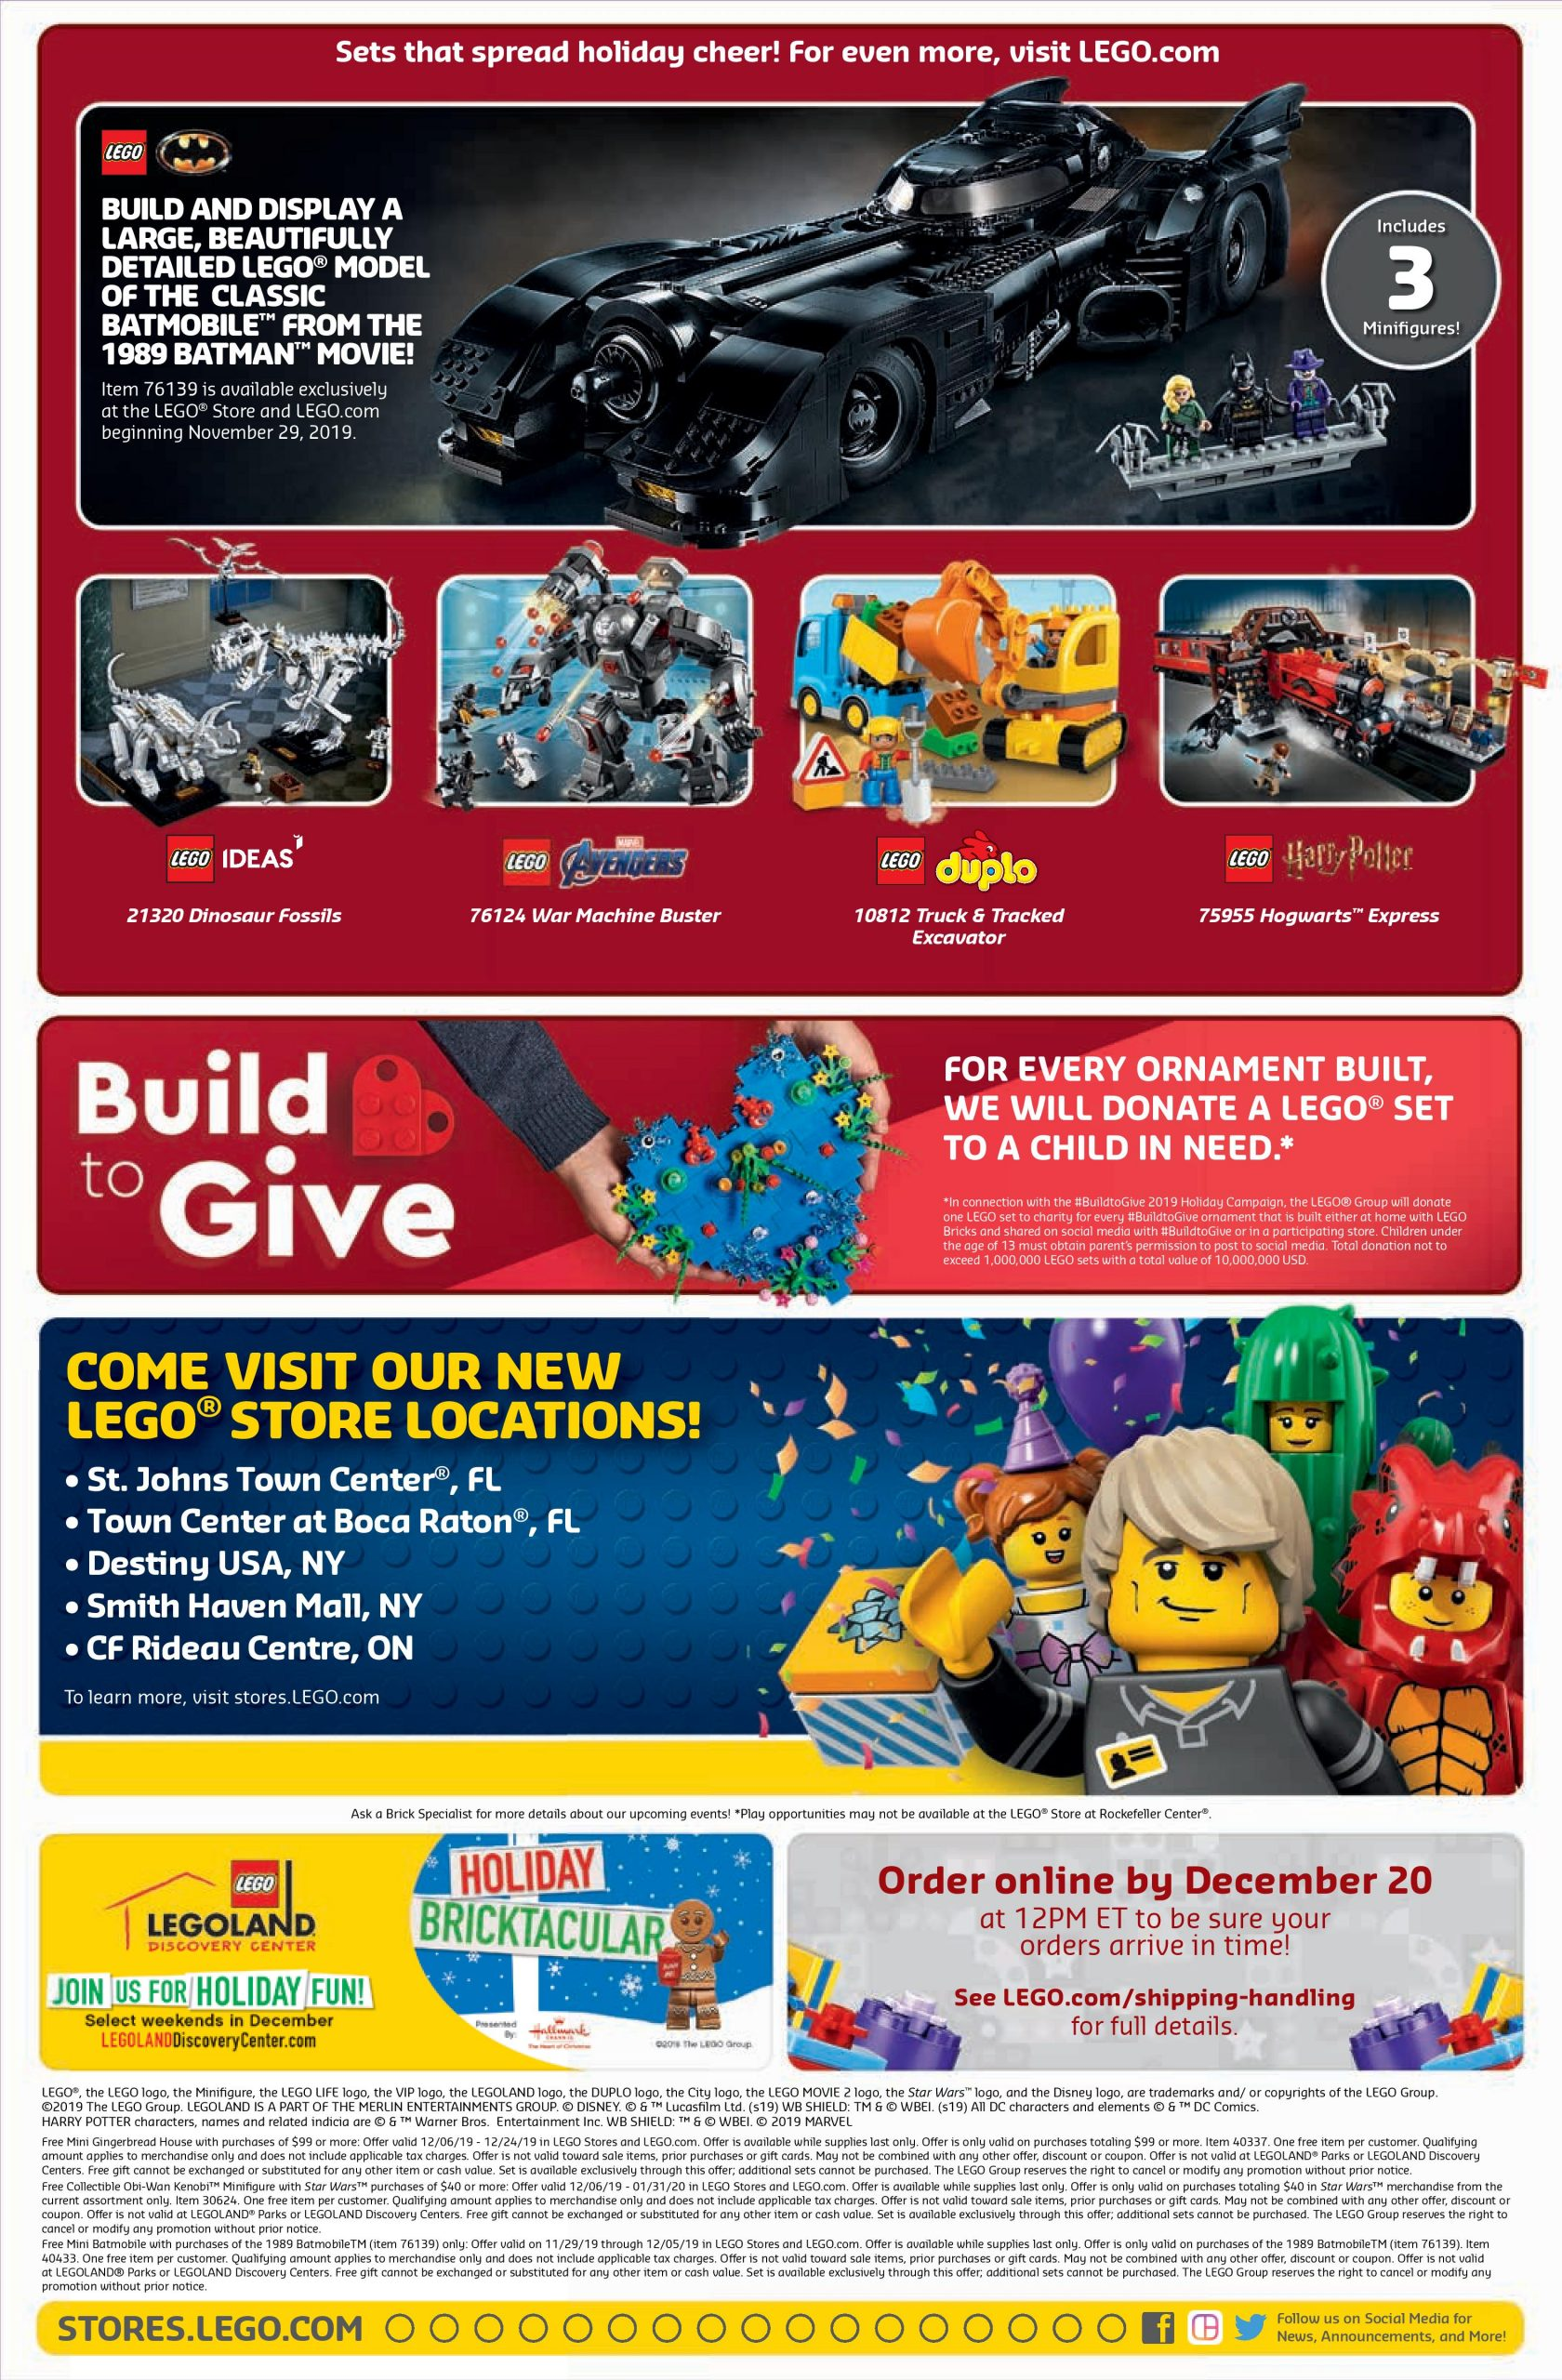 LEGO December 2019 Store Calendar Promotions & Events - The